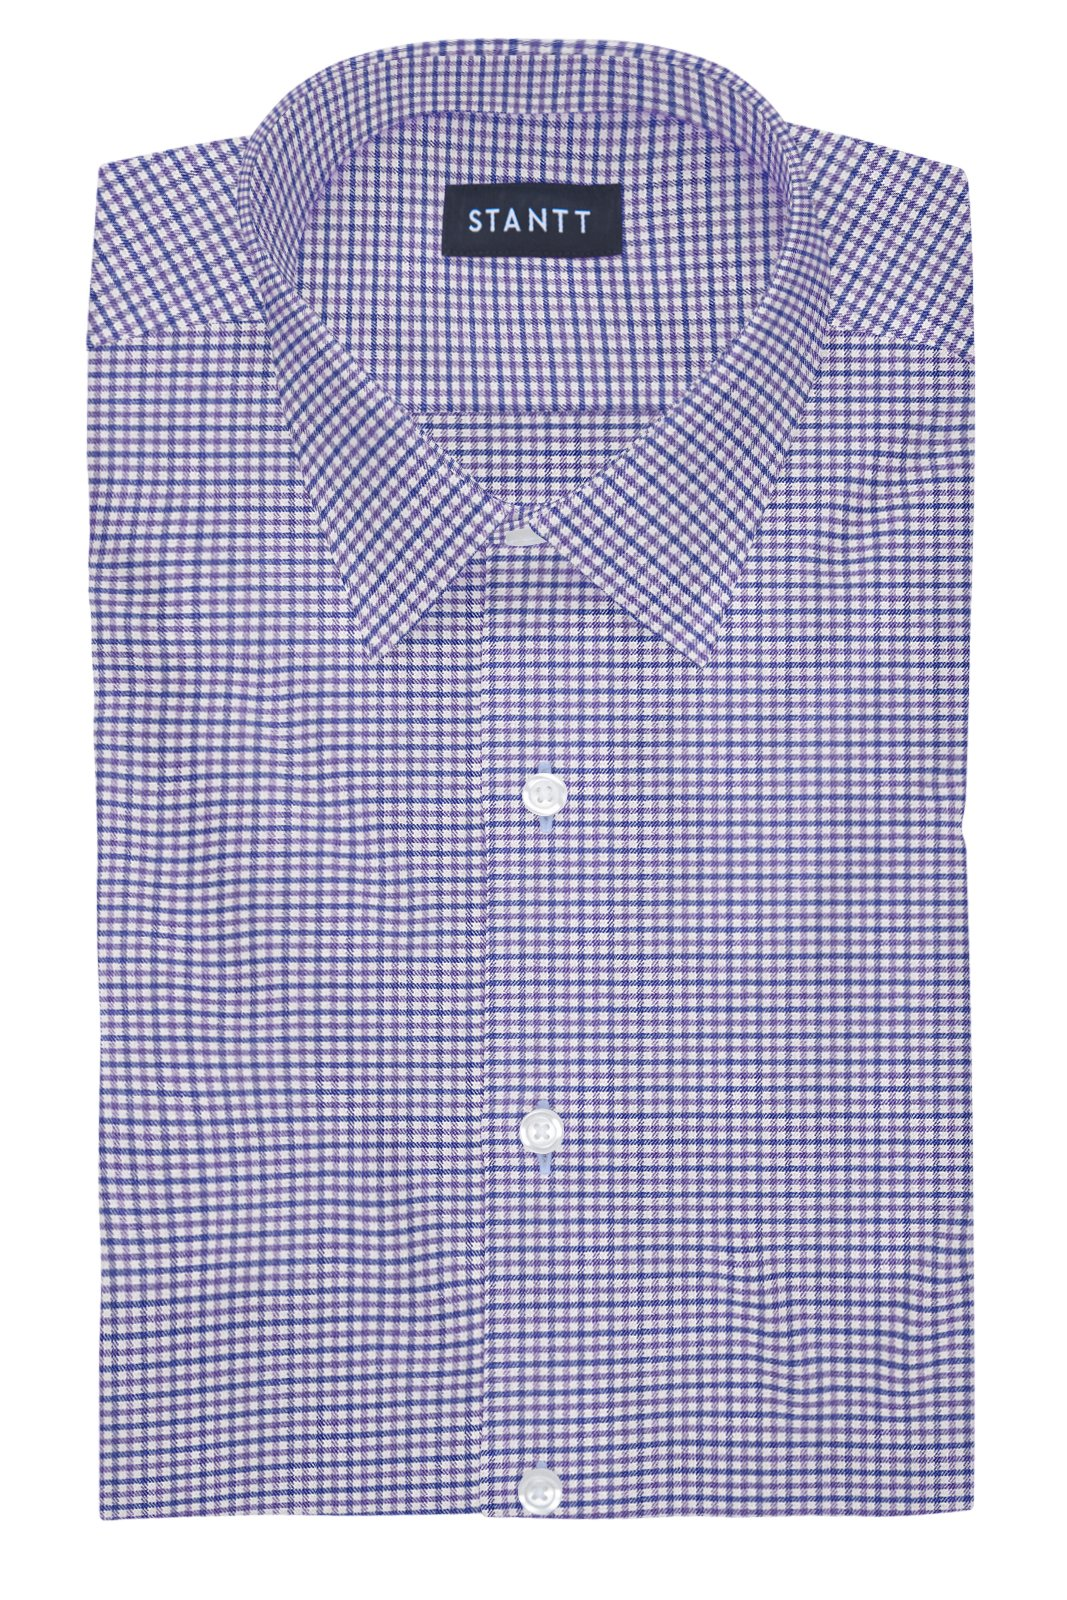 Performance Purple and Blue Mini Gingham: Semi-Spread Collar, Barrel Cuff